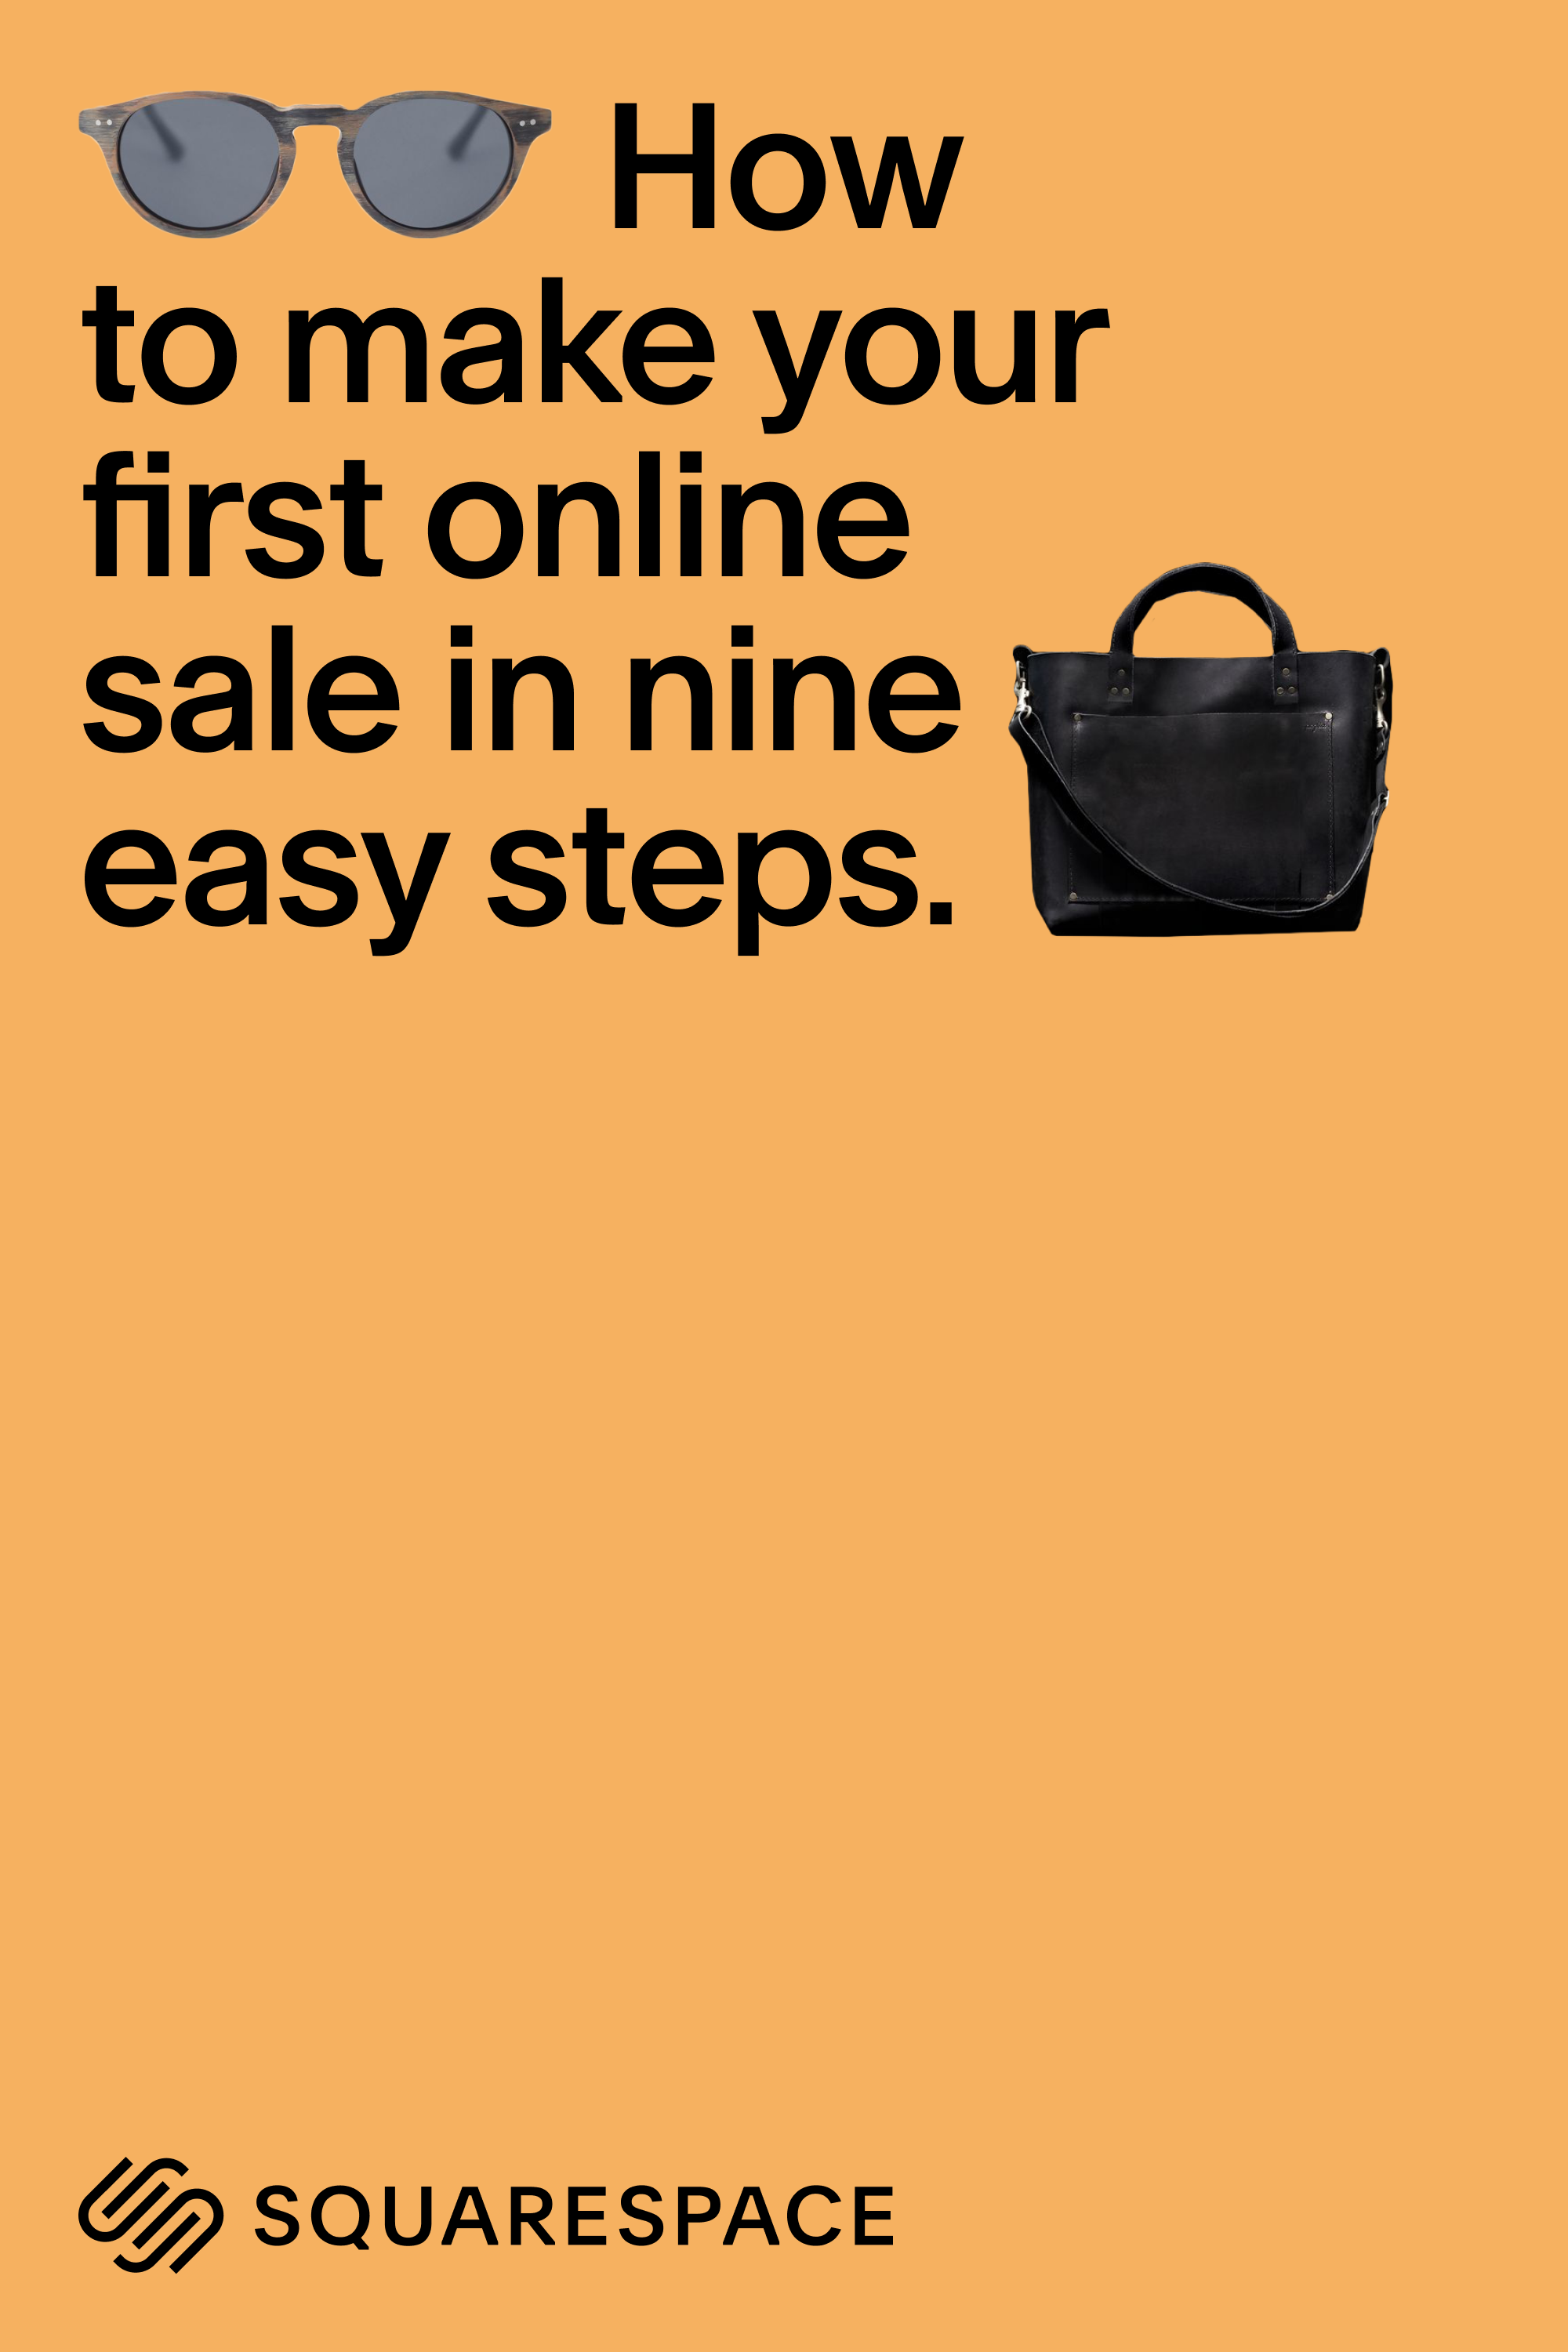 How to Make your First Sale